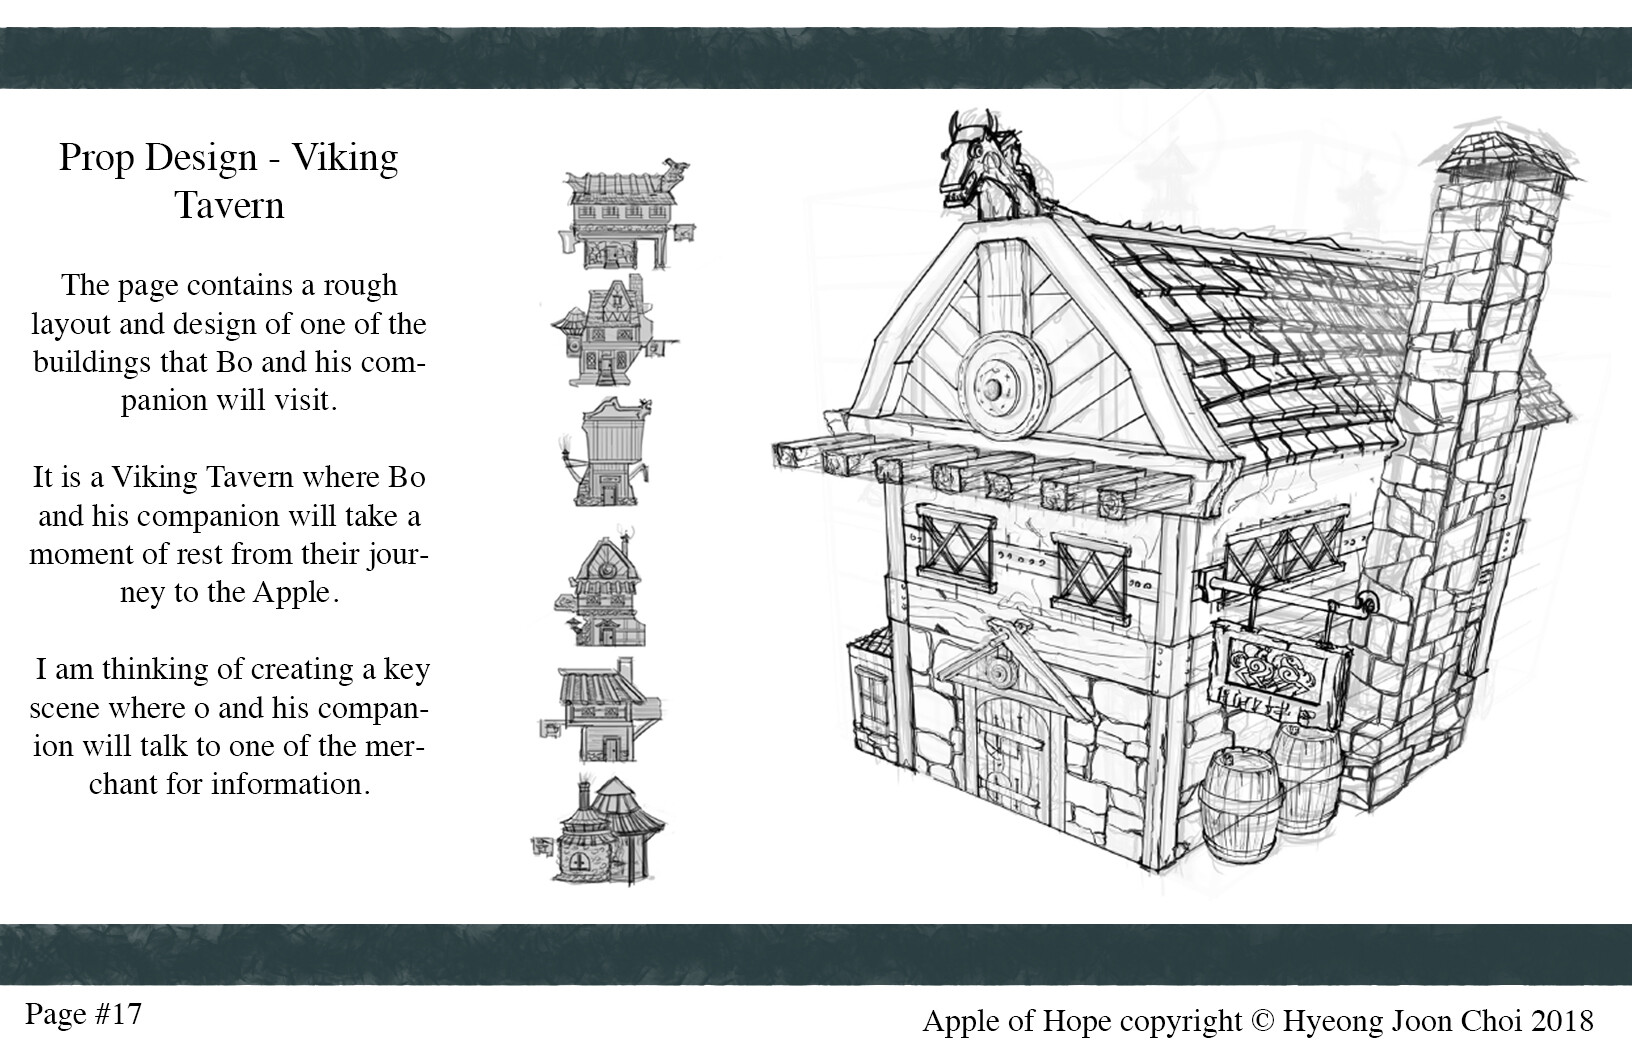 Production Design: Viking Tavern